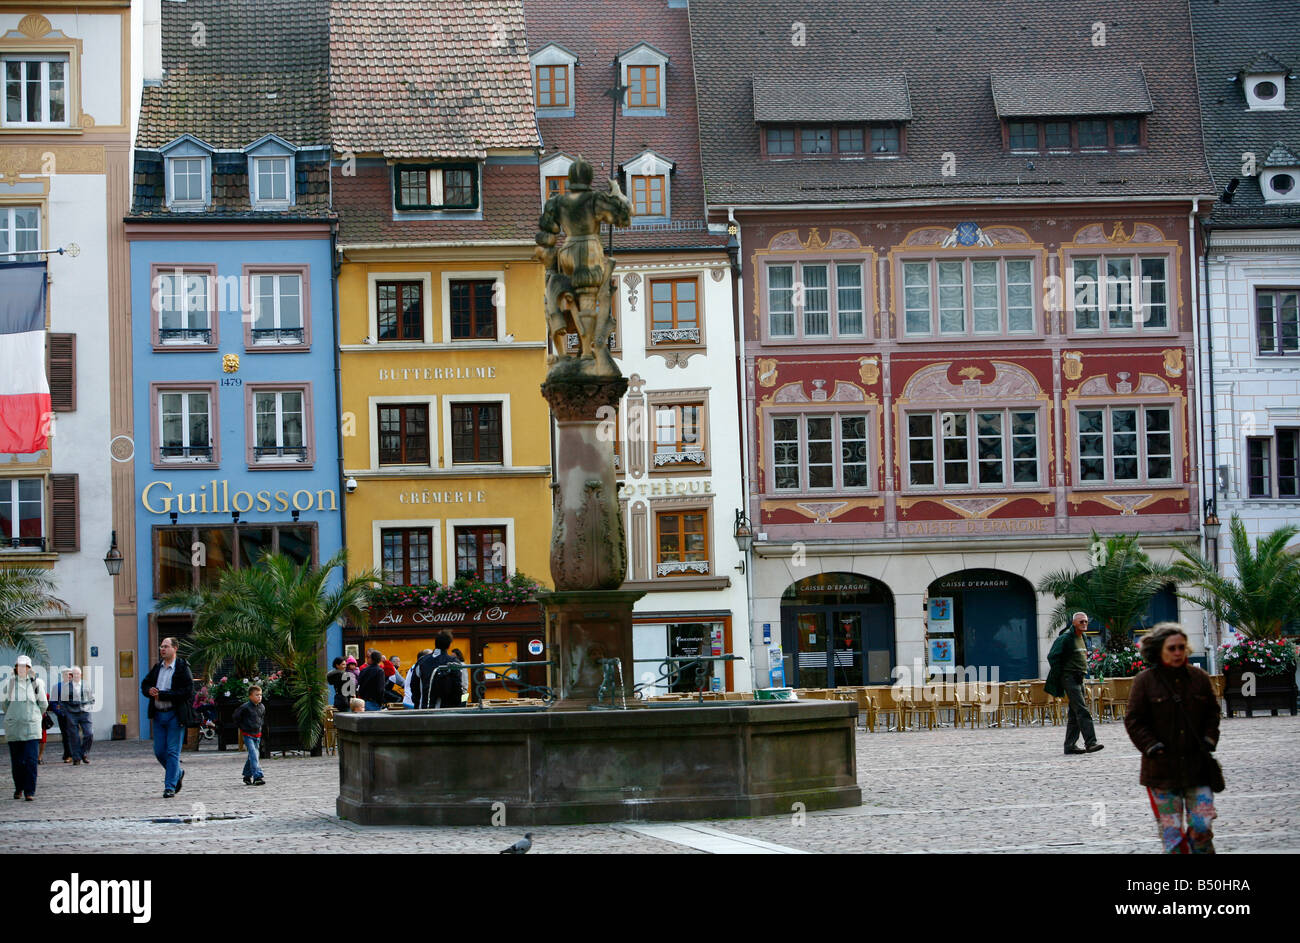 sep 2008 place de la reunion mulhouse alsace france stock photo royalty free image 20297630. Black Bedroom Furniture Sets. Home Design Ideas